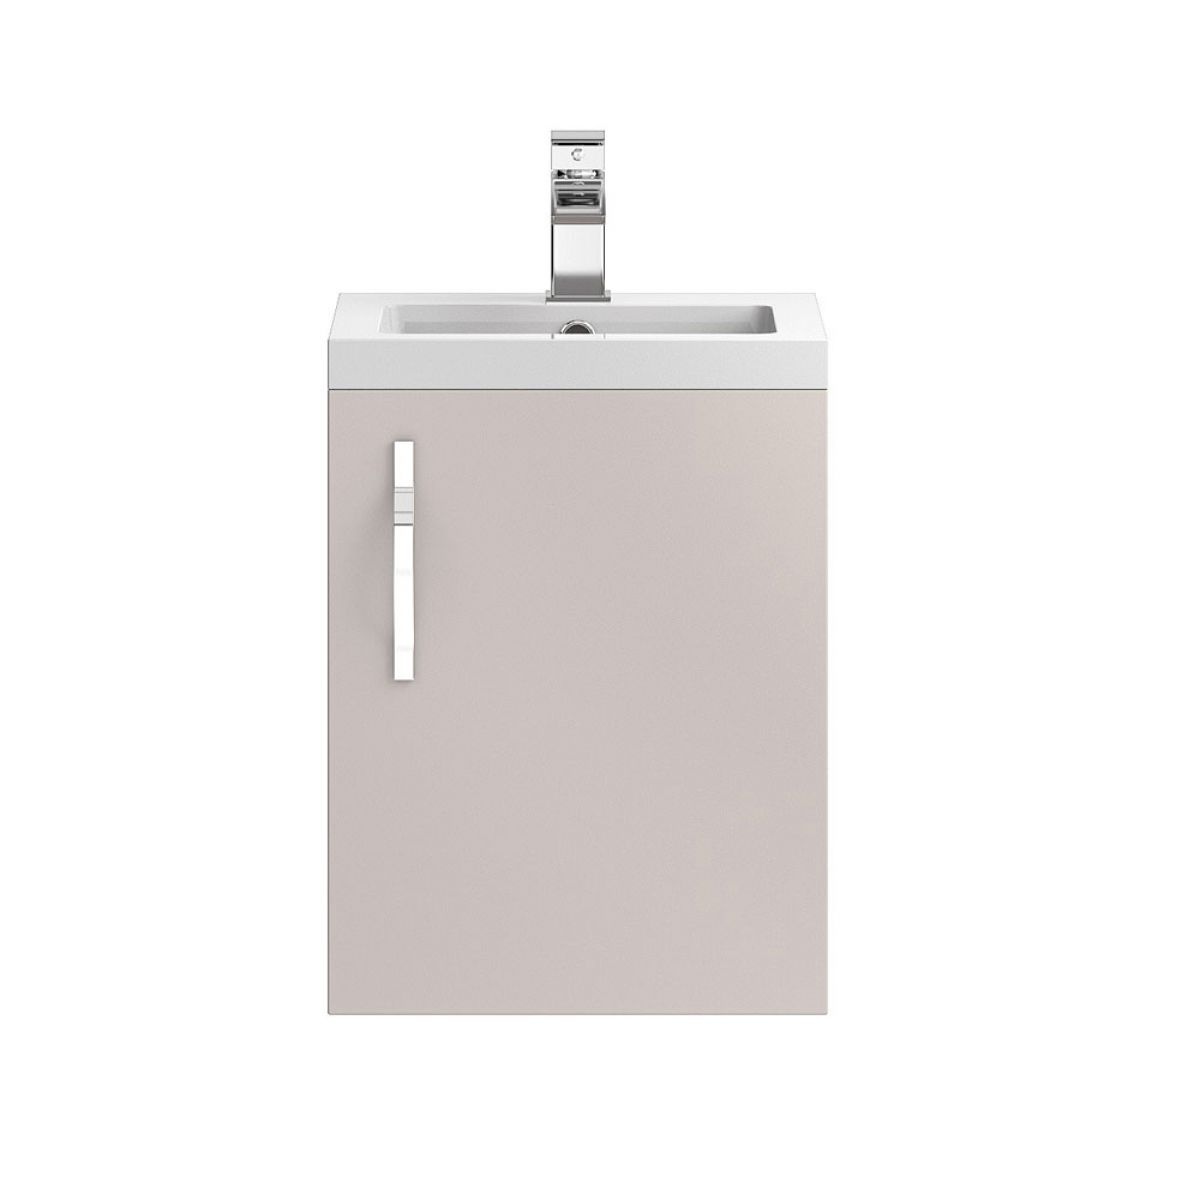 Hudson Reed Apollo Gloss Cashmere Wall Hung Vanity Unit 400mm